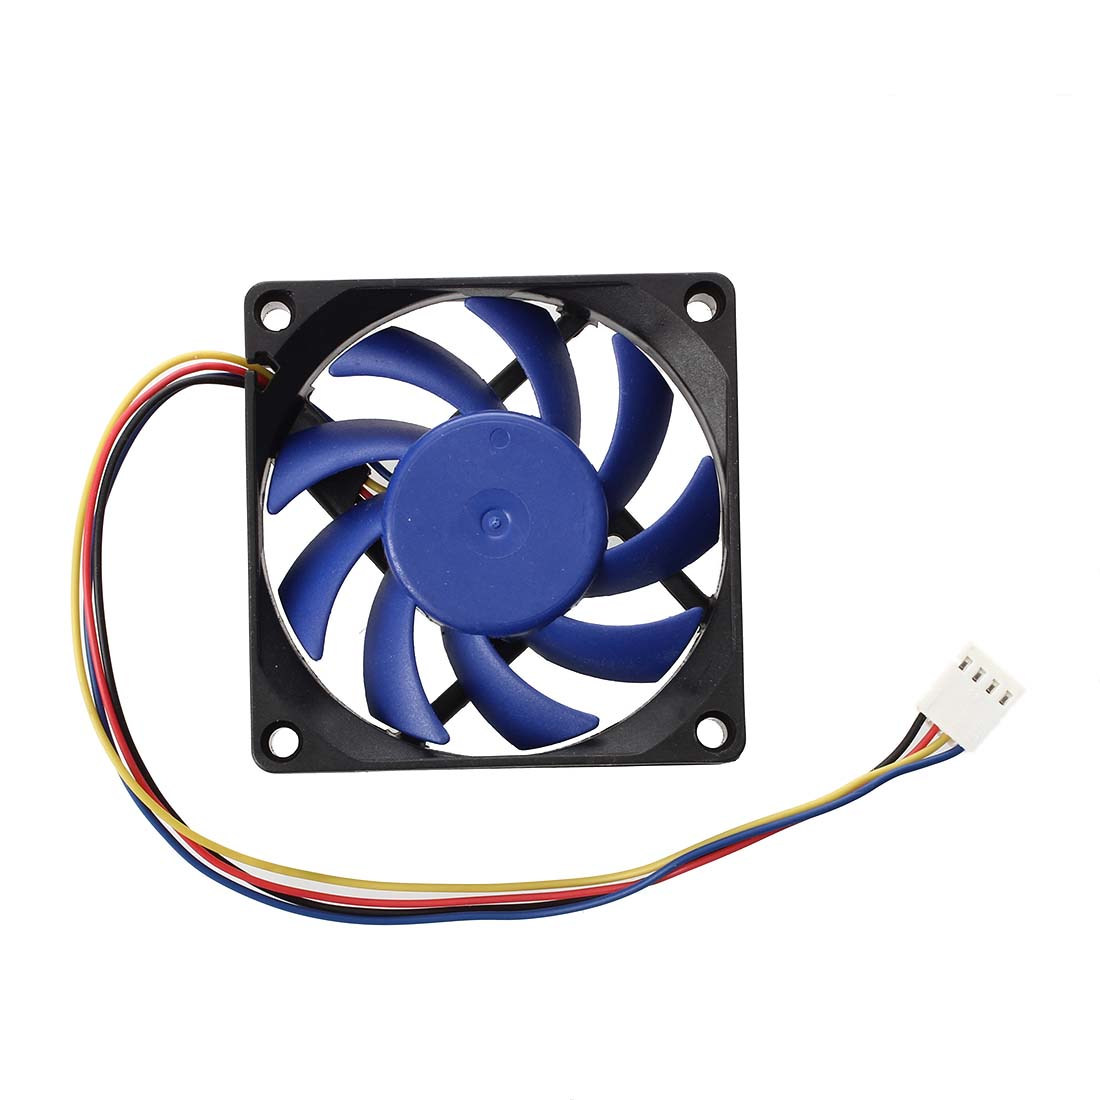 12V DC 32 70mm 4-Pin Computer Case CFM PWM CPU PC Fan Blue & Black